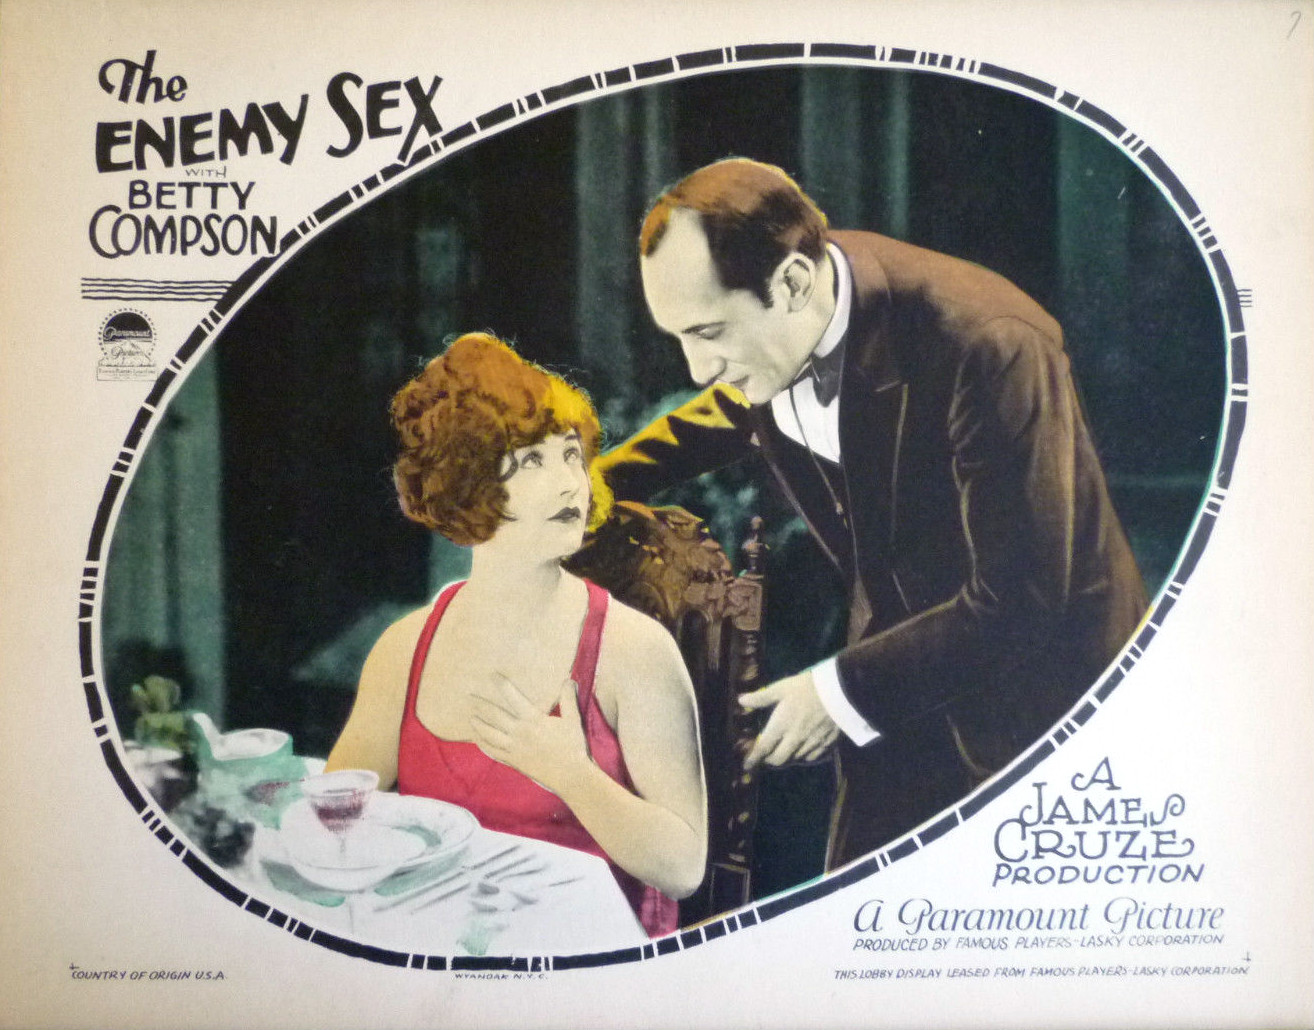 Enemy Sex lobby card 2.jpg English: Lobby card for the American drama film The Enemy Sex (1924). Date 1924 Source source eBay Author Paramount